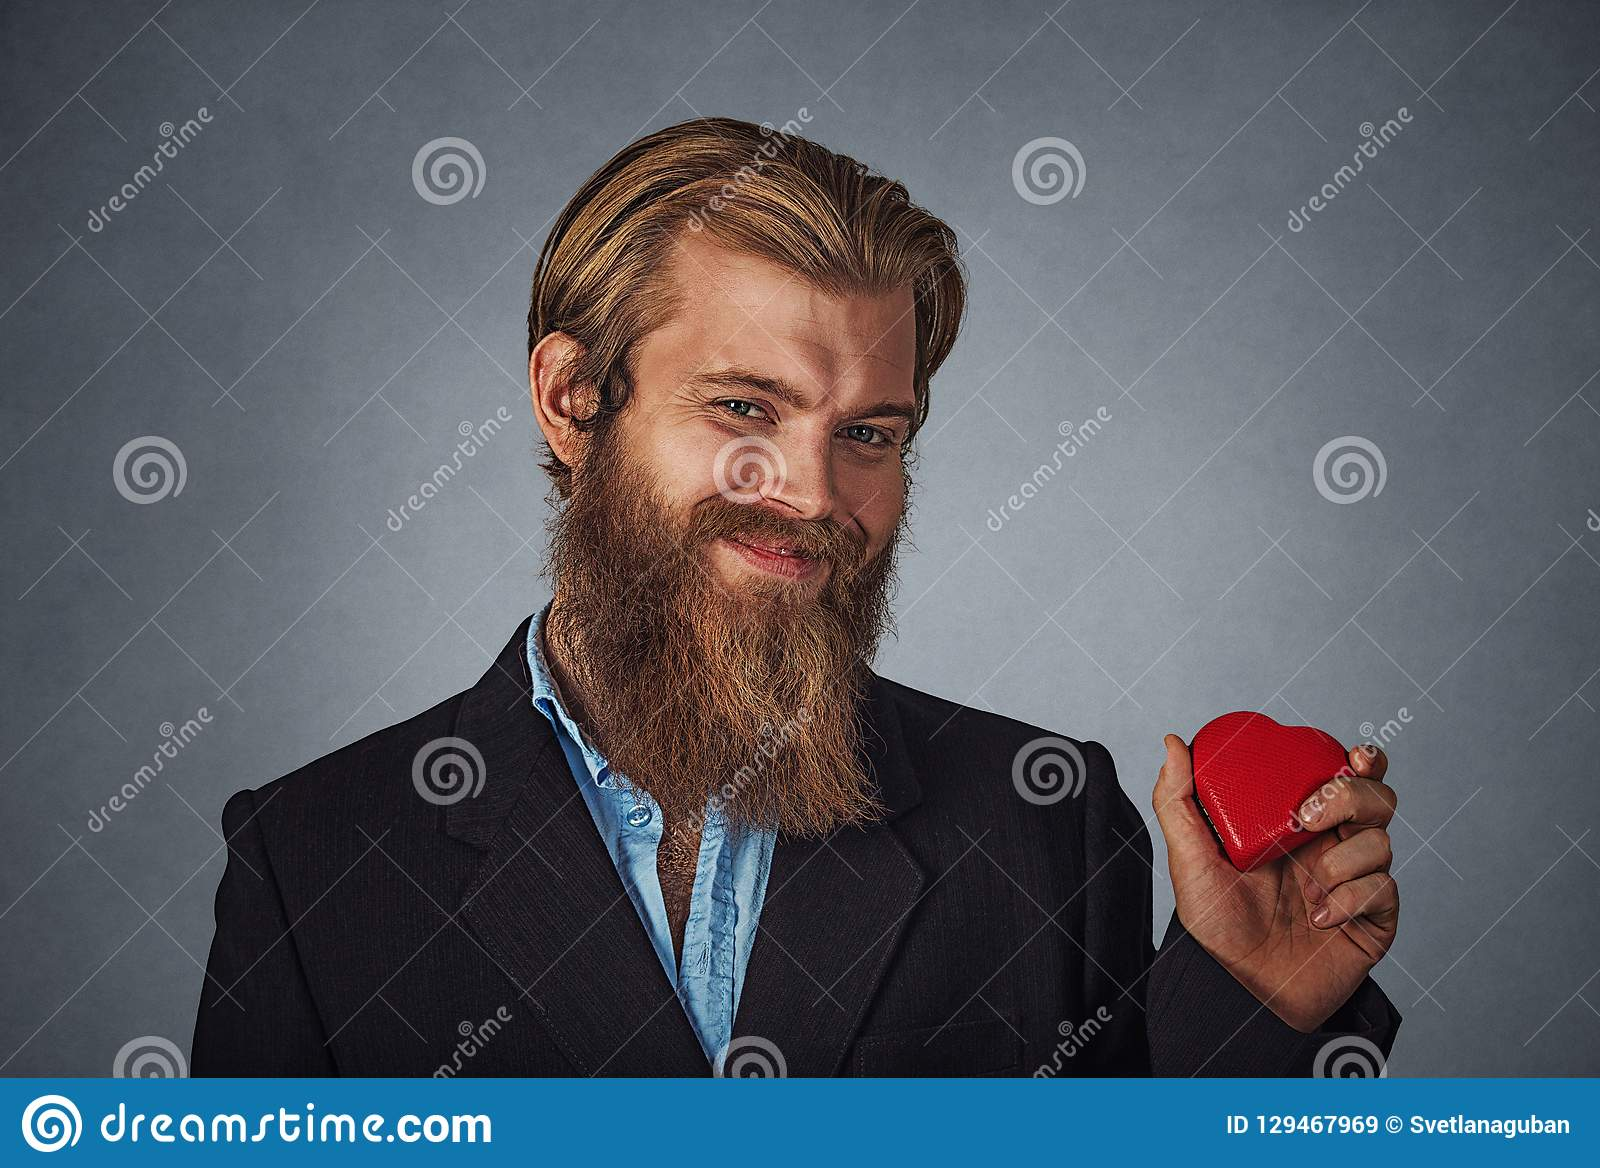 d40e2810a75 ... holding red heart shaped gift box ready for Valentine`s day. Isolated  on gray grey studio wall Background. Negative face expression